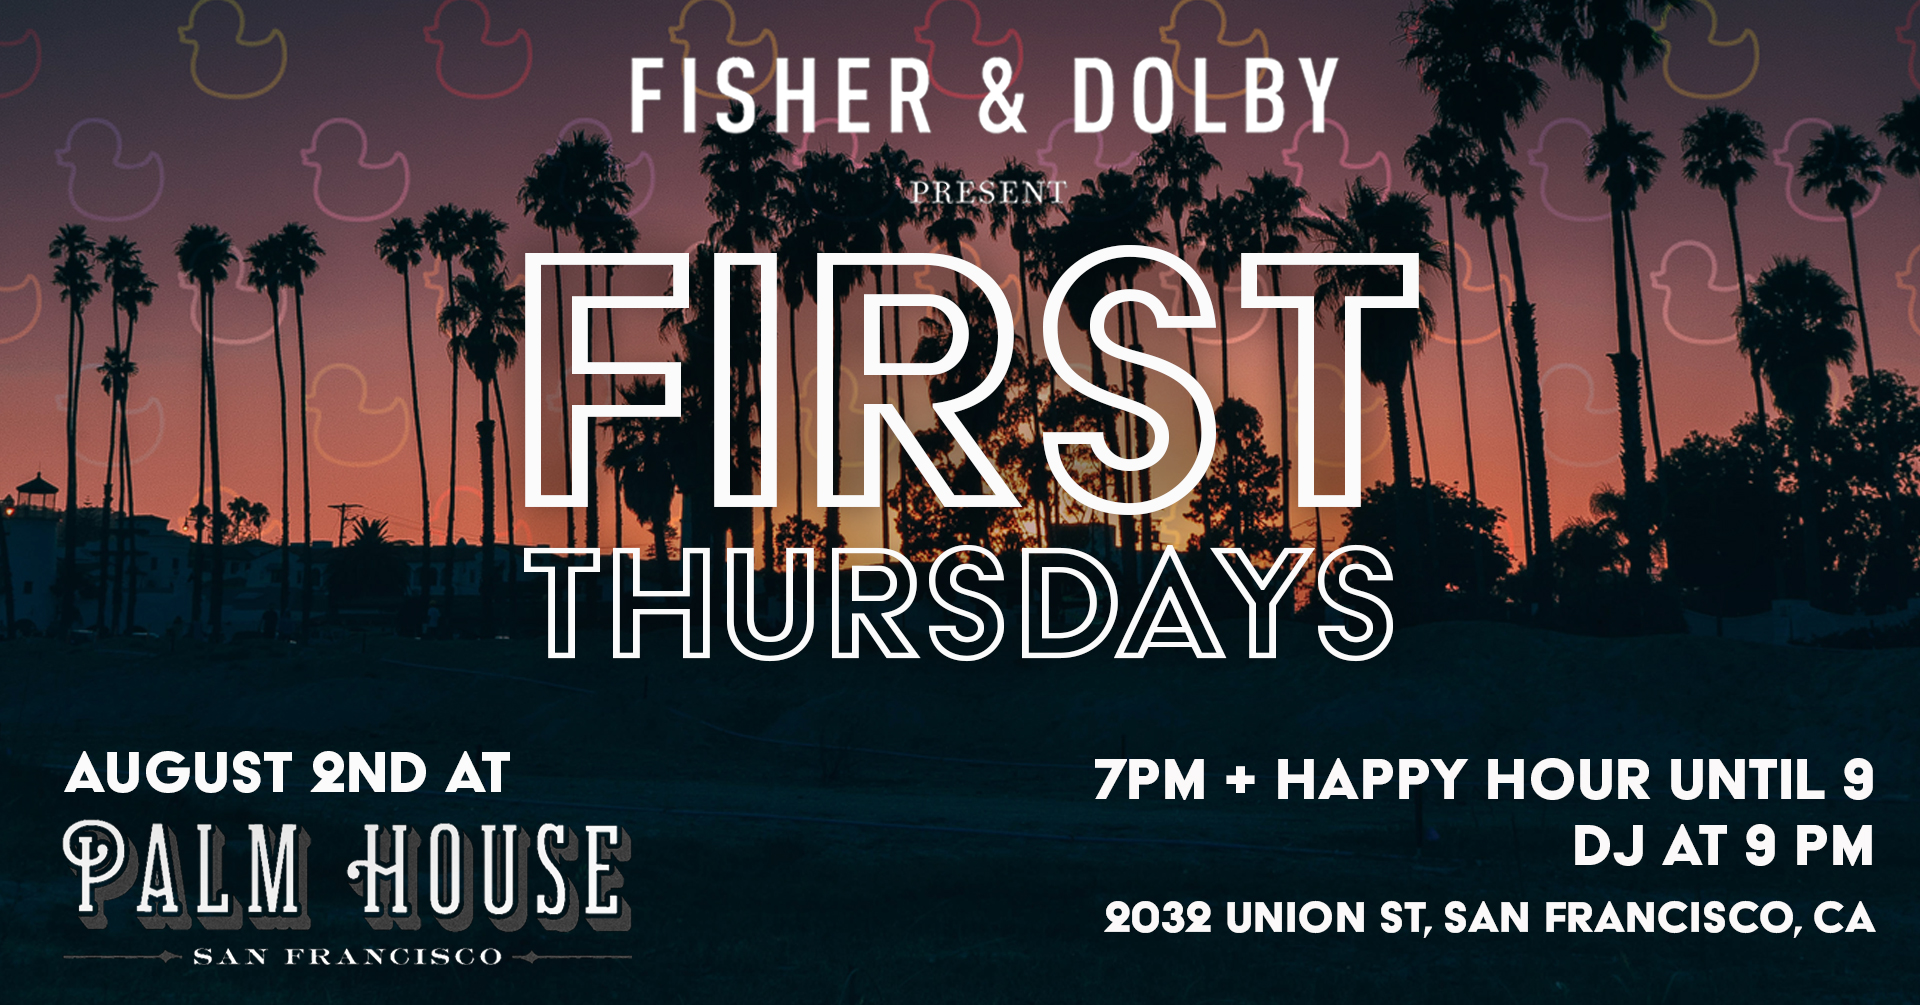 Fisher&Dolby-FirstThursdays_FB82.jpg